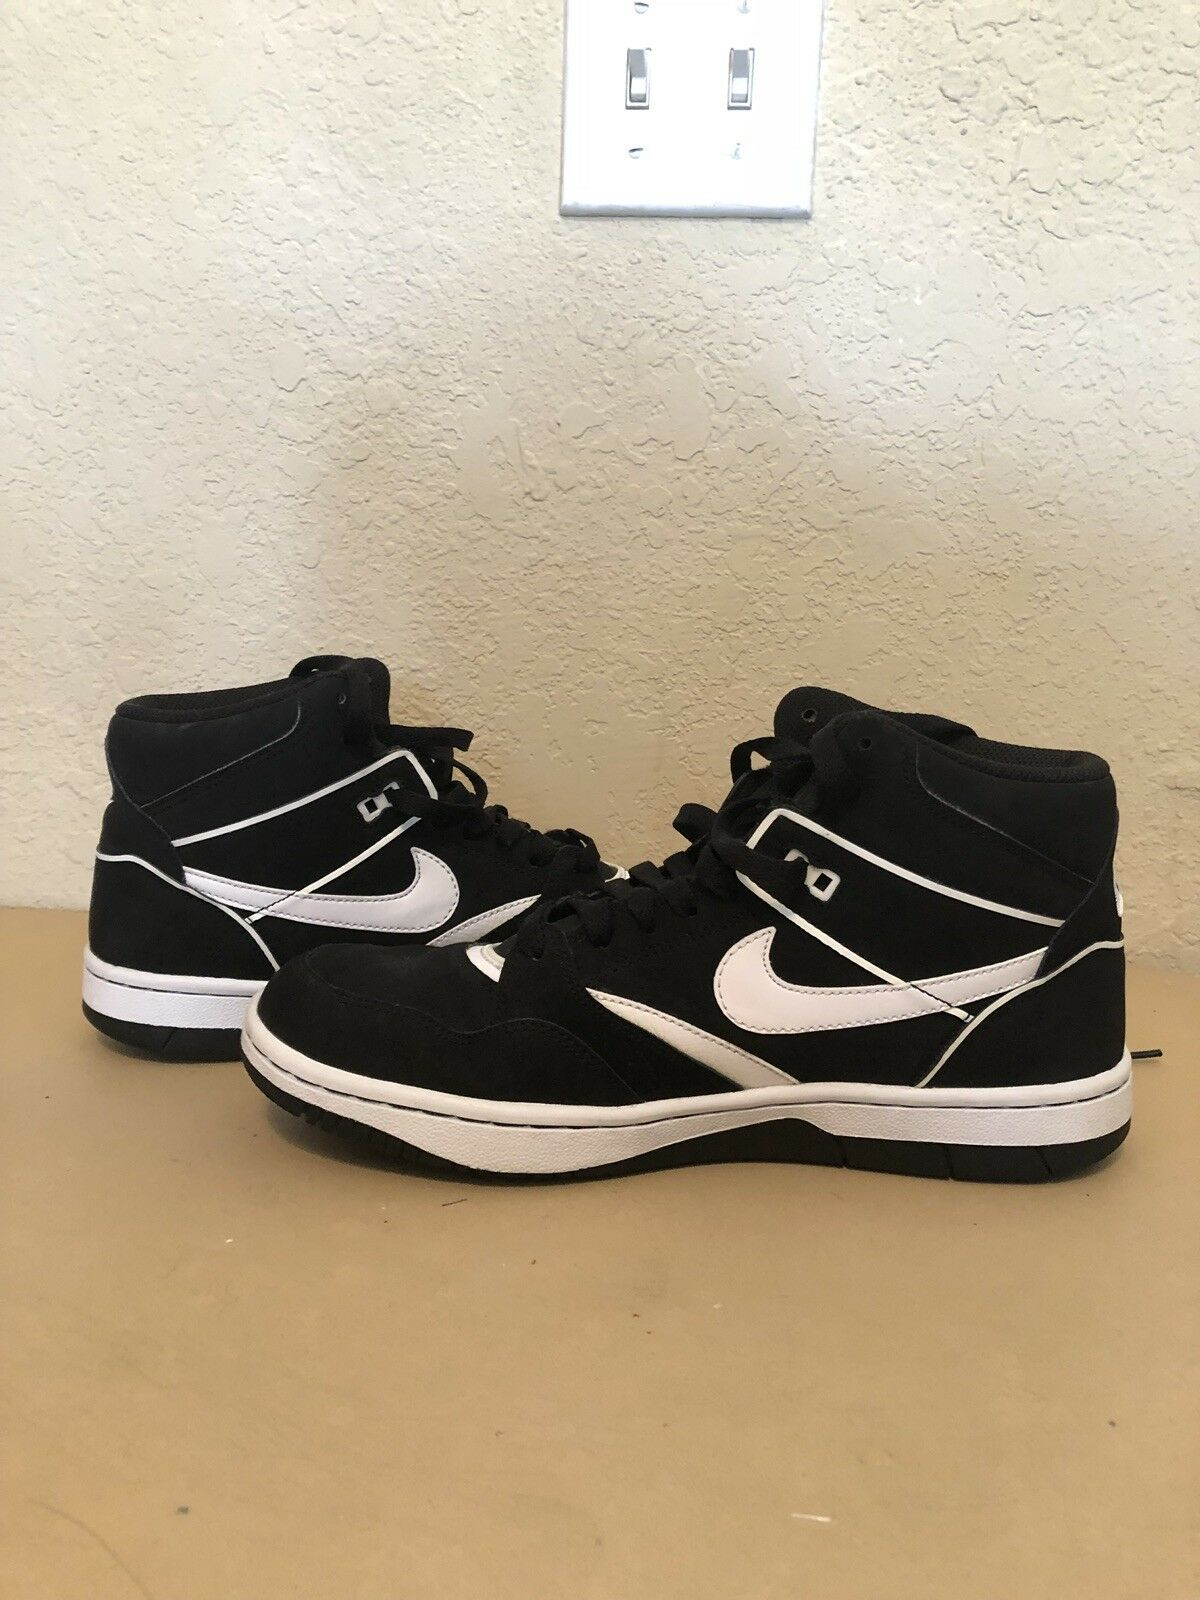 Nike Sky Force 88 Mid Black White Size 9 Barely Used